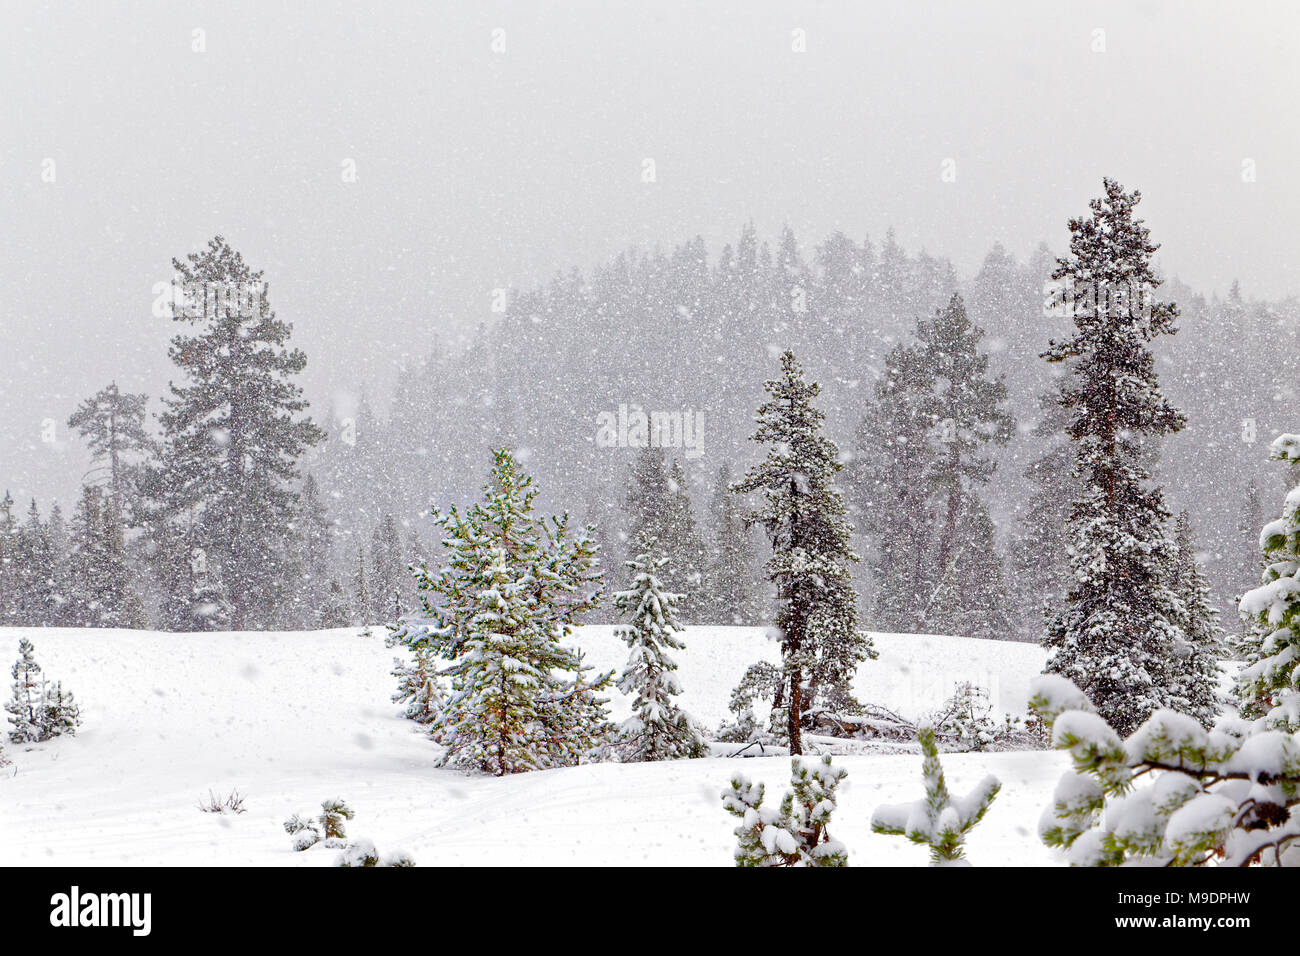 43,042.07668 heavily snowing on background winter hill and sparse conifer forest open meadow, snowy winter whiteout landscape - Stock Image